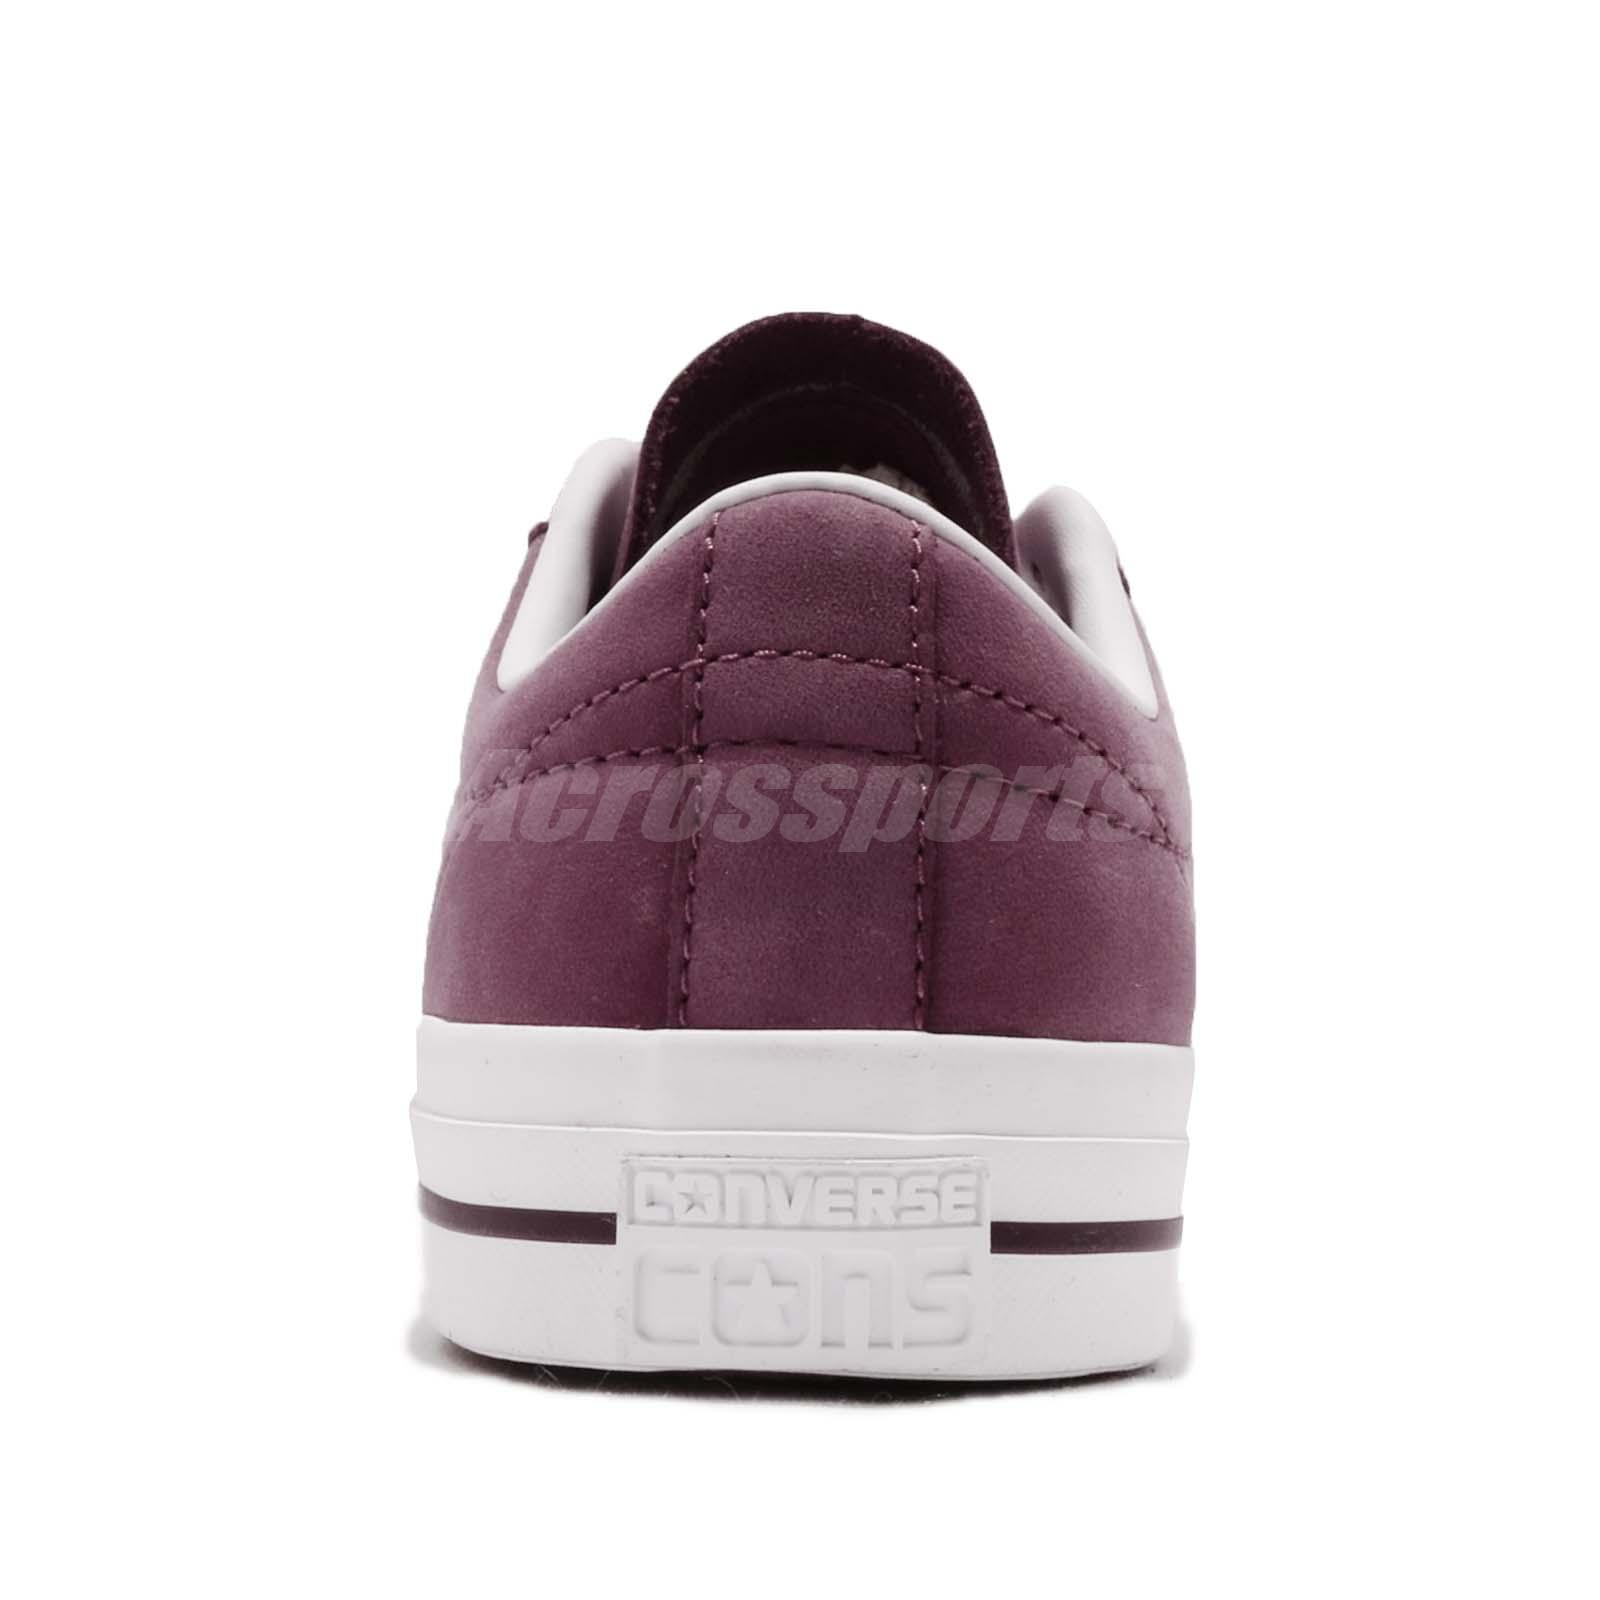 88286a2a51d5 Converse One Star Pro Purple White Men Casual Classic Shoes Sneakers ...